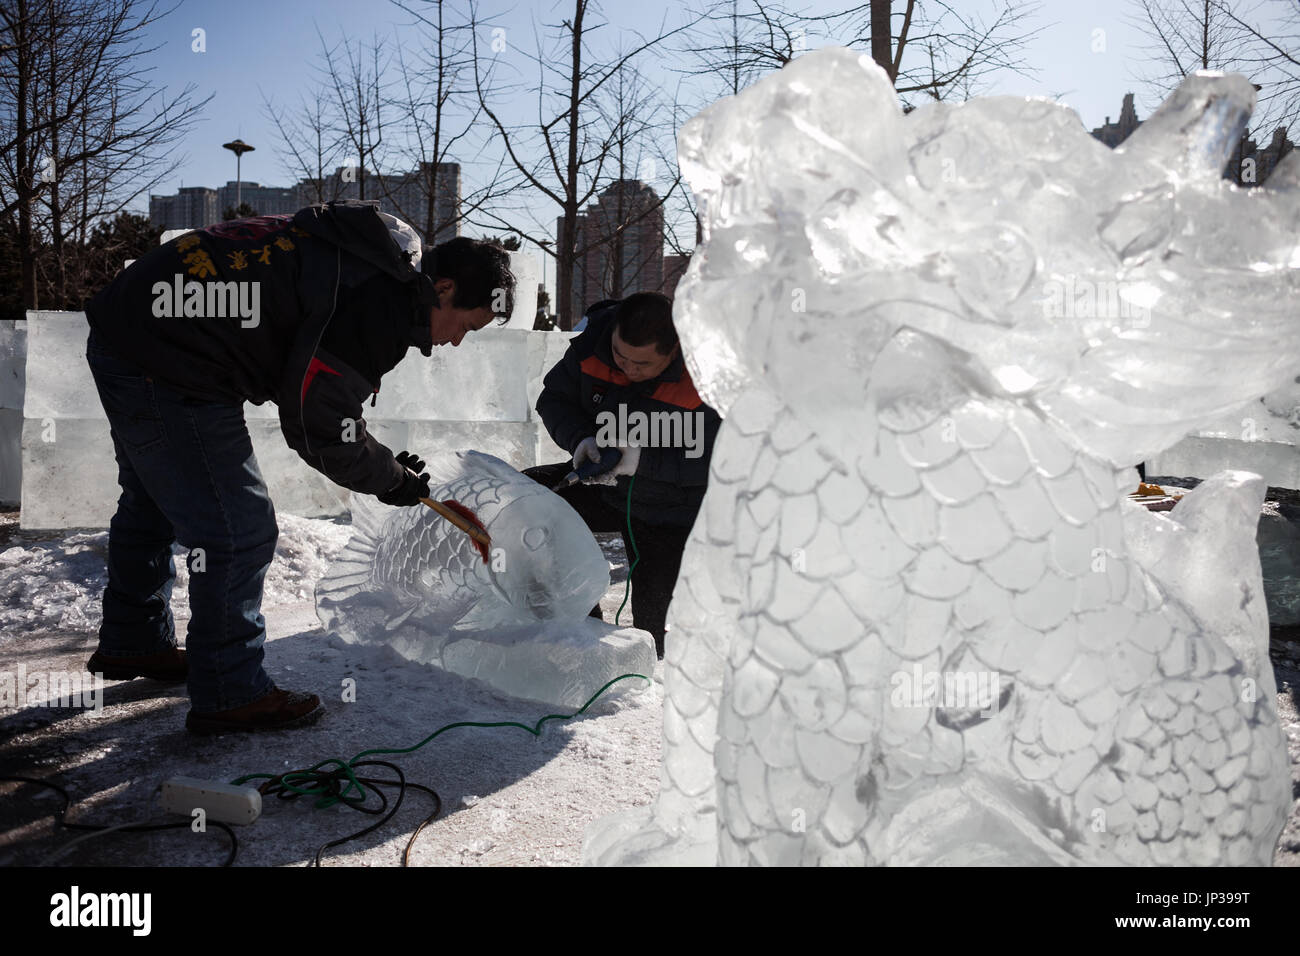 Ice Sculptures Stock Photos & Ice Sculptures Stock Images - Alamy